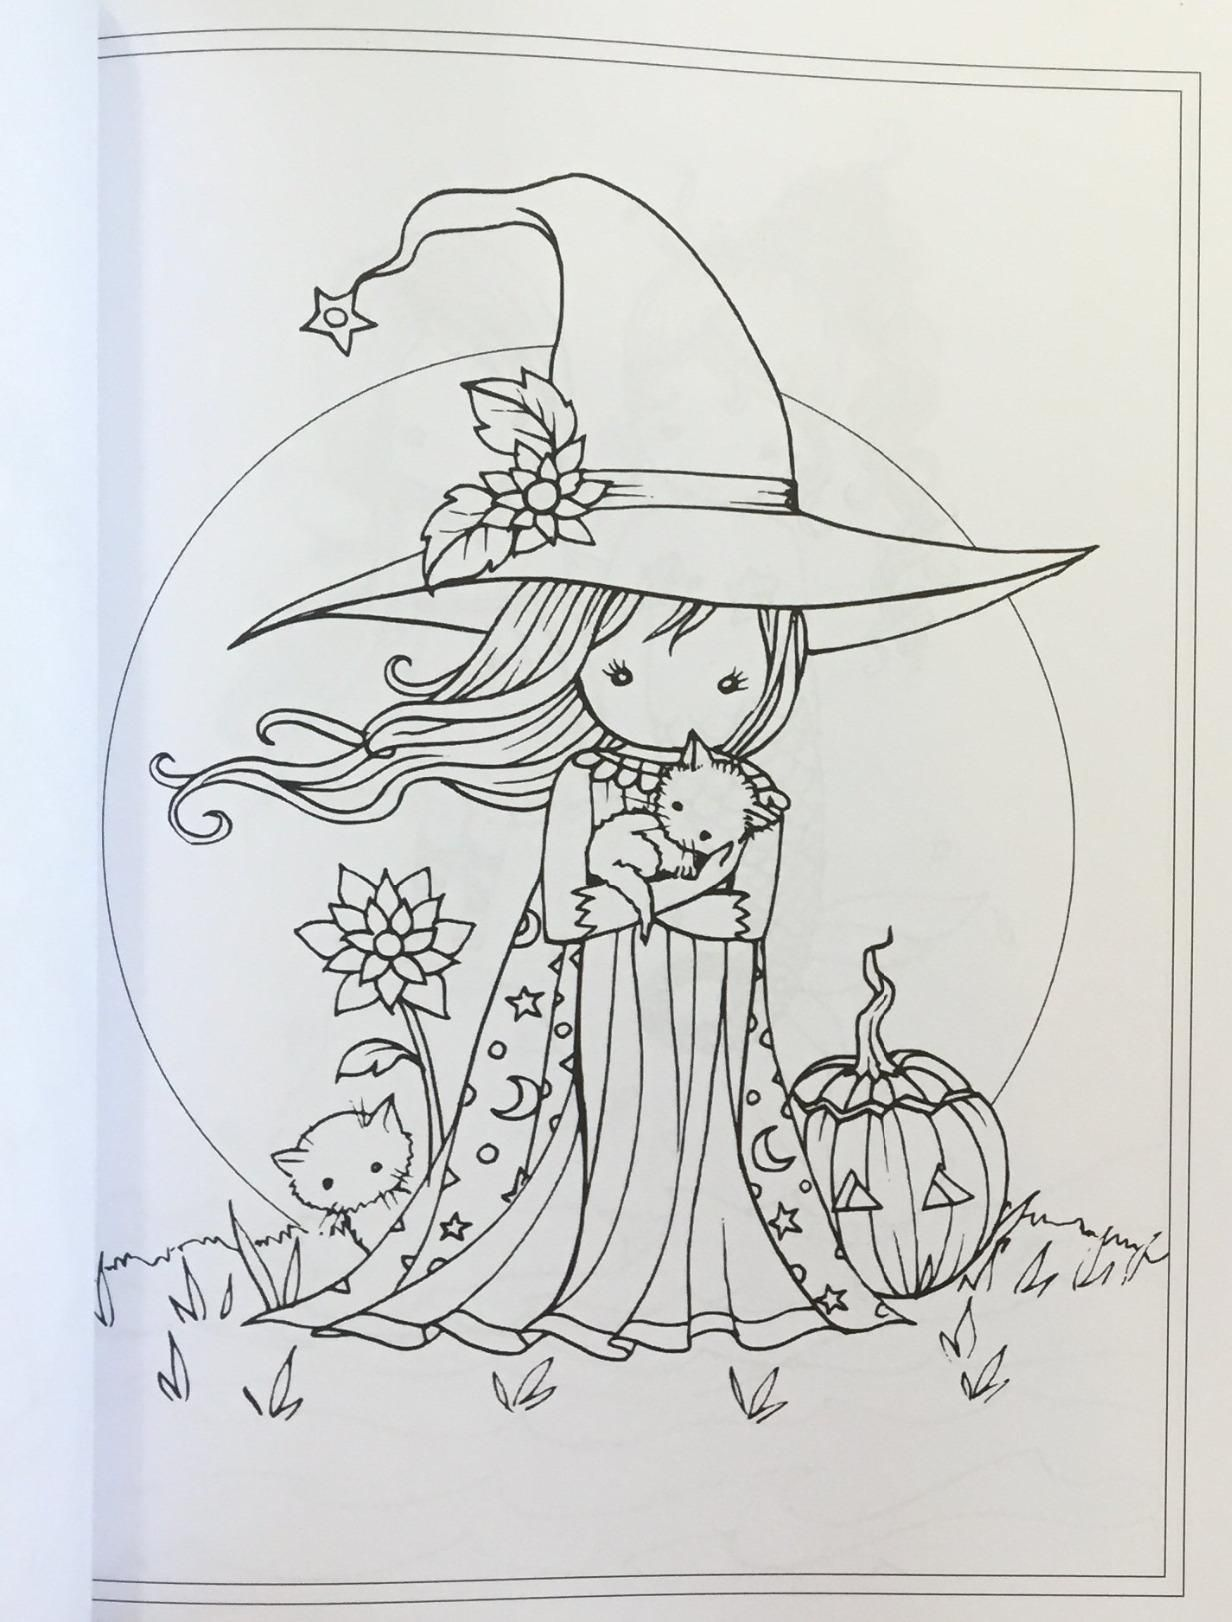 Whimsical World #2 Coloring Book: Fairies, Mermaids, Witches